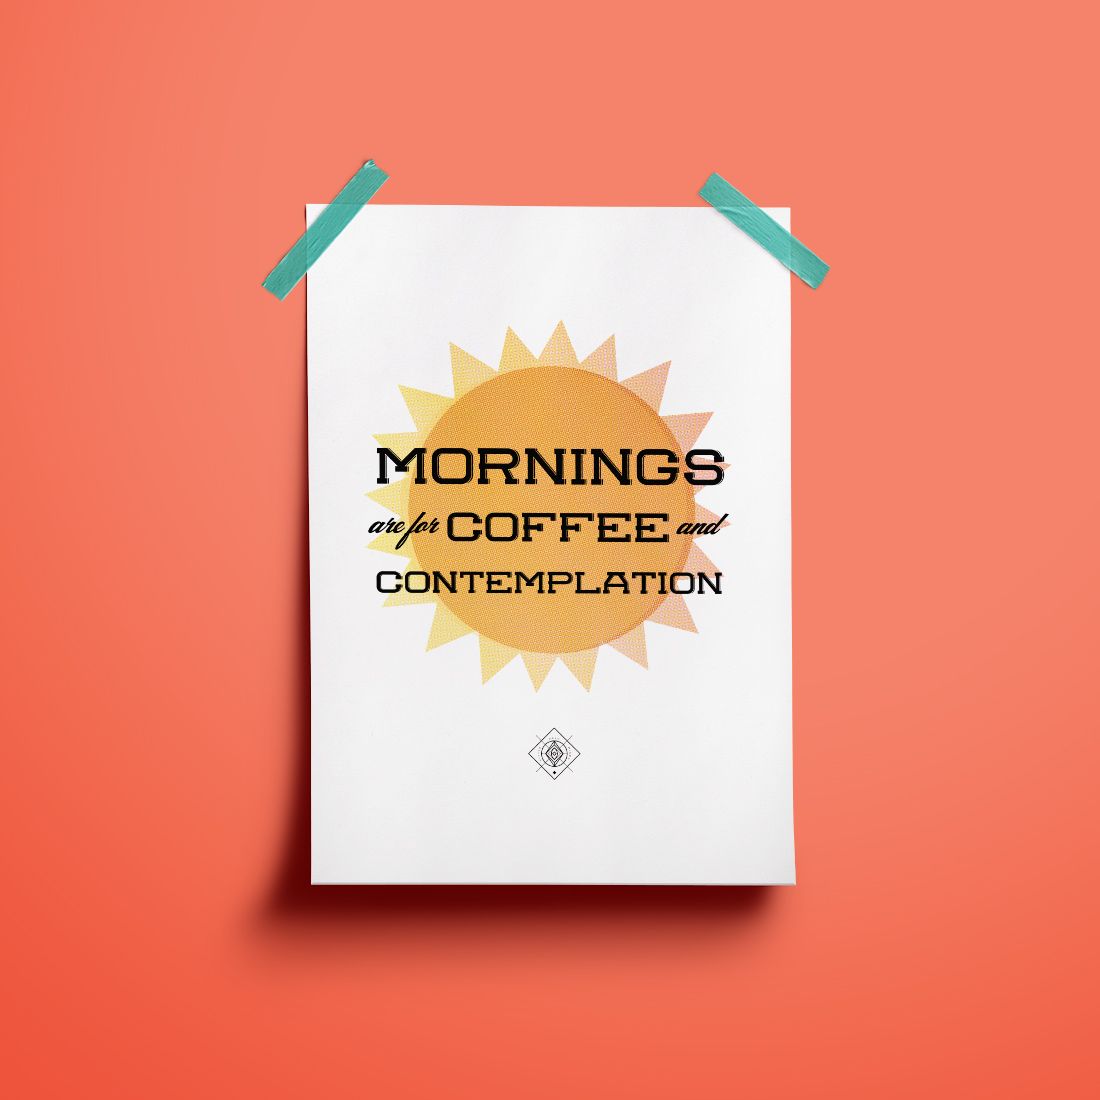 Stranger Things Free Art Printable Mornings Are for Coffee and Contemplation •Little Gold Pixel